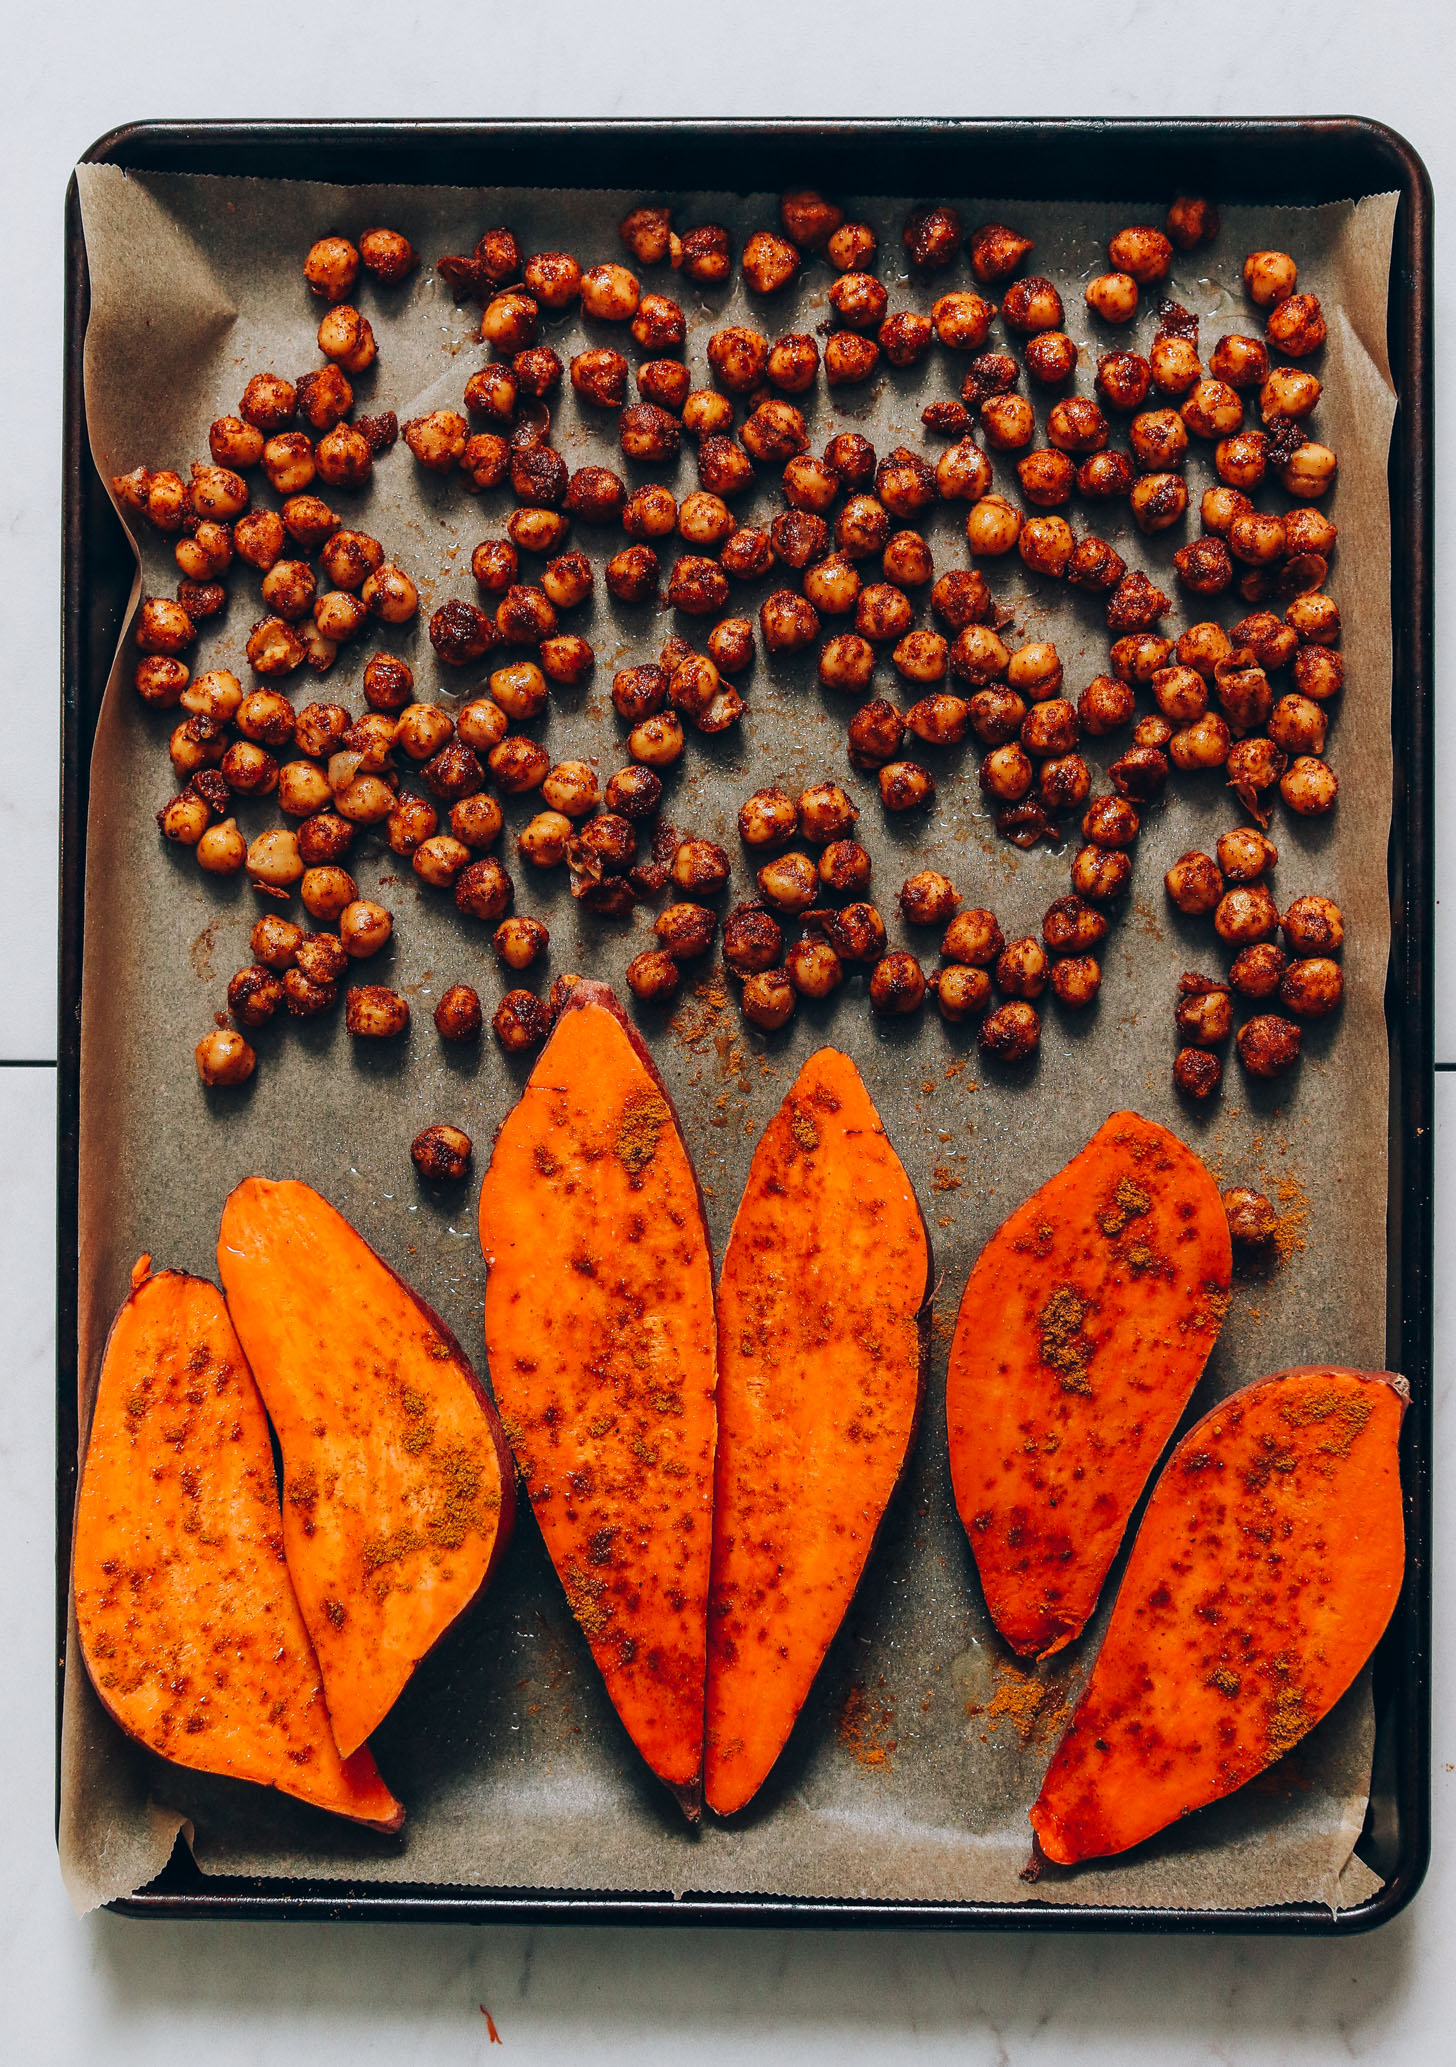 Parchment-lined baking sheet of sweet potatoes and chickpeas topped with tandoori masala seasoning